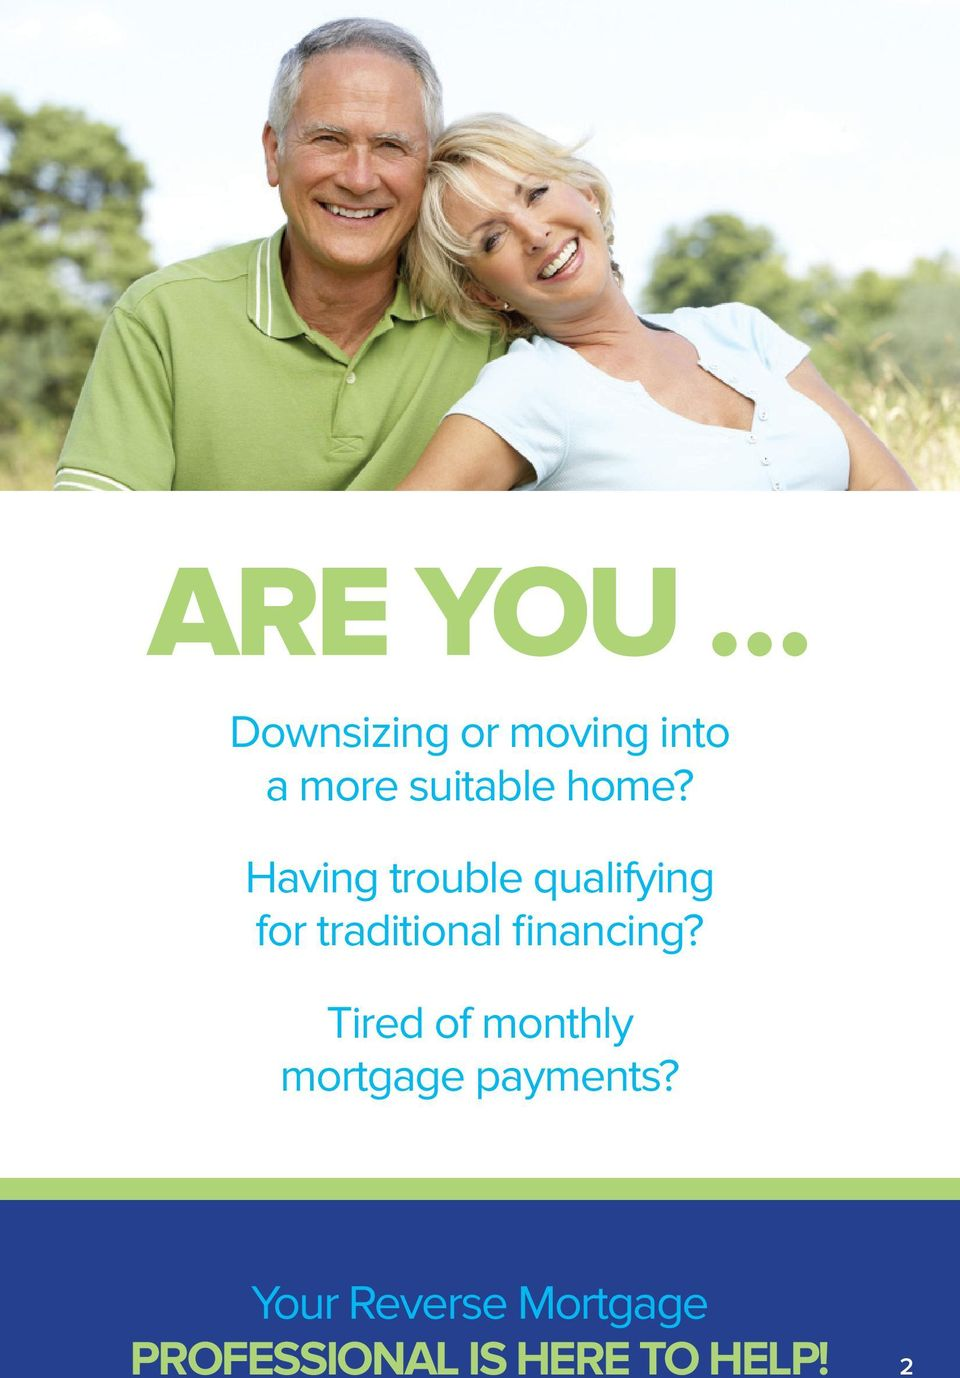 financing? Tired of monthly mortgage payments?